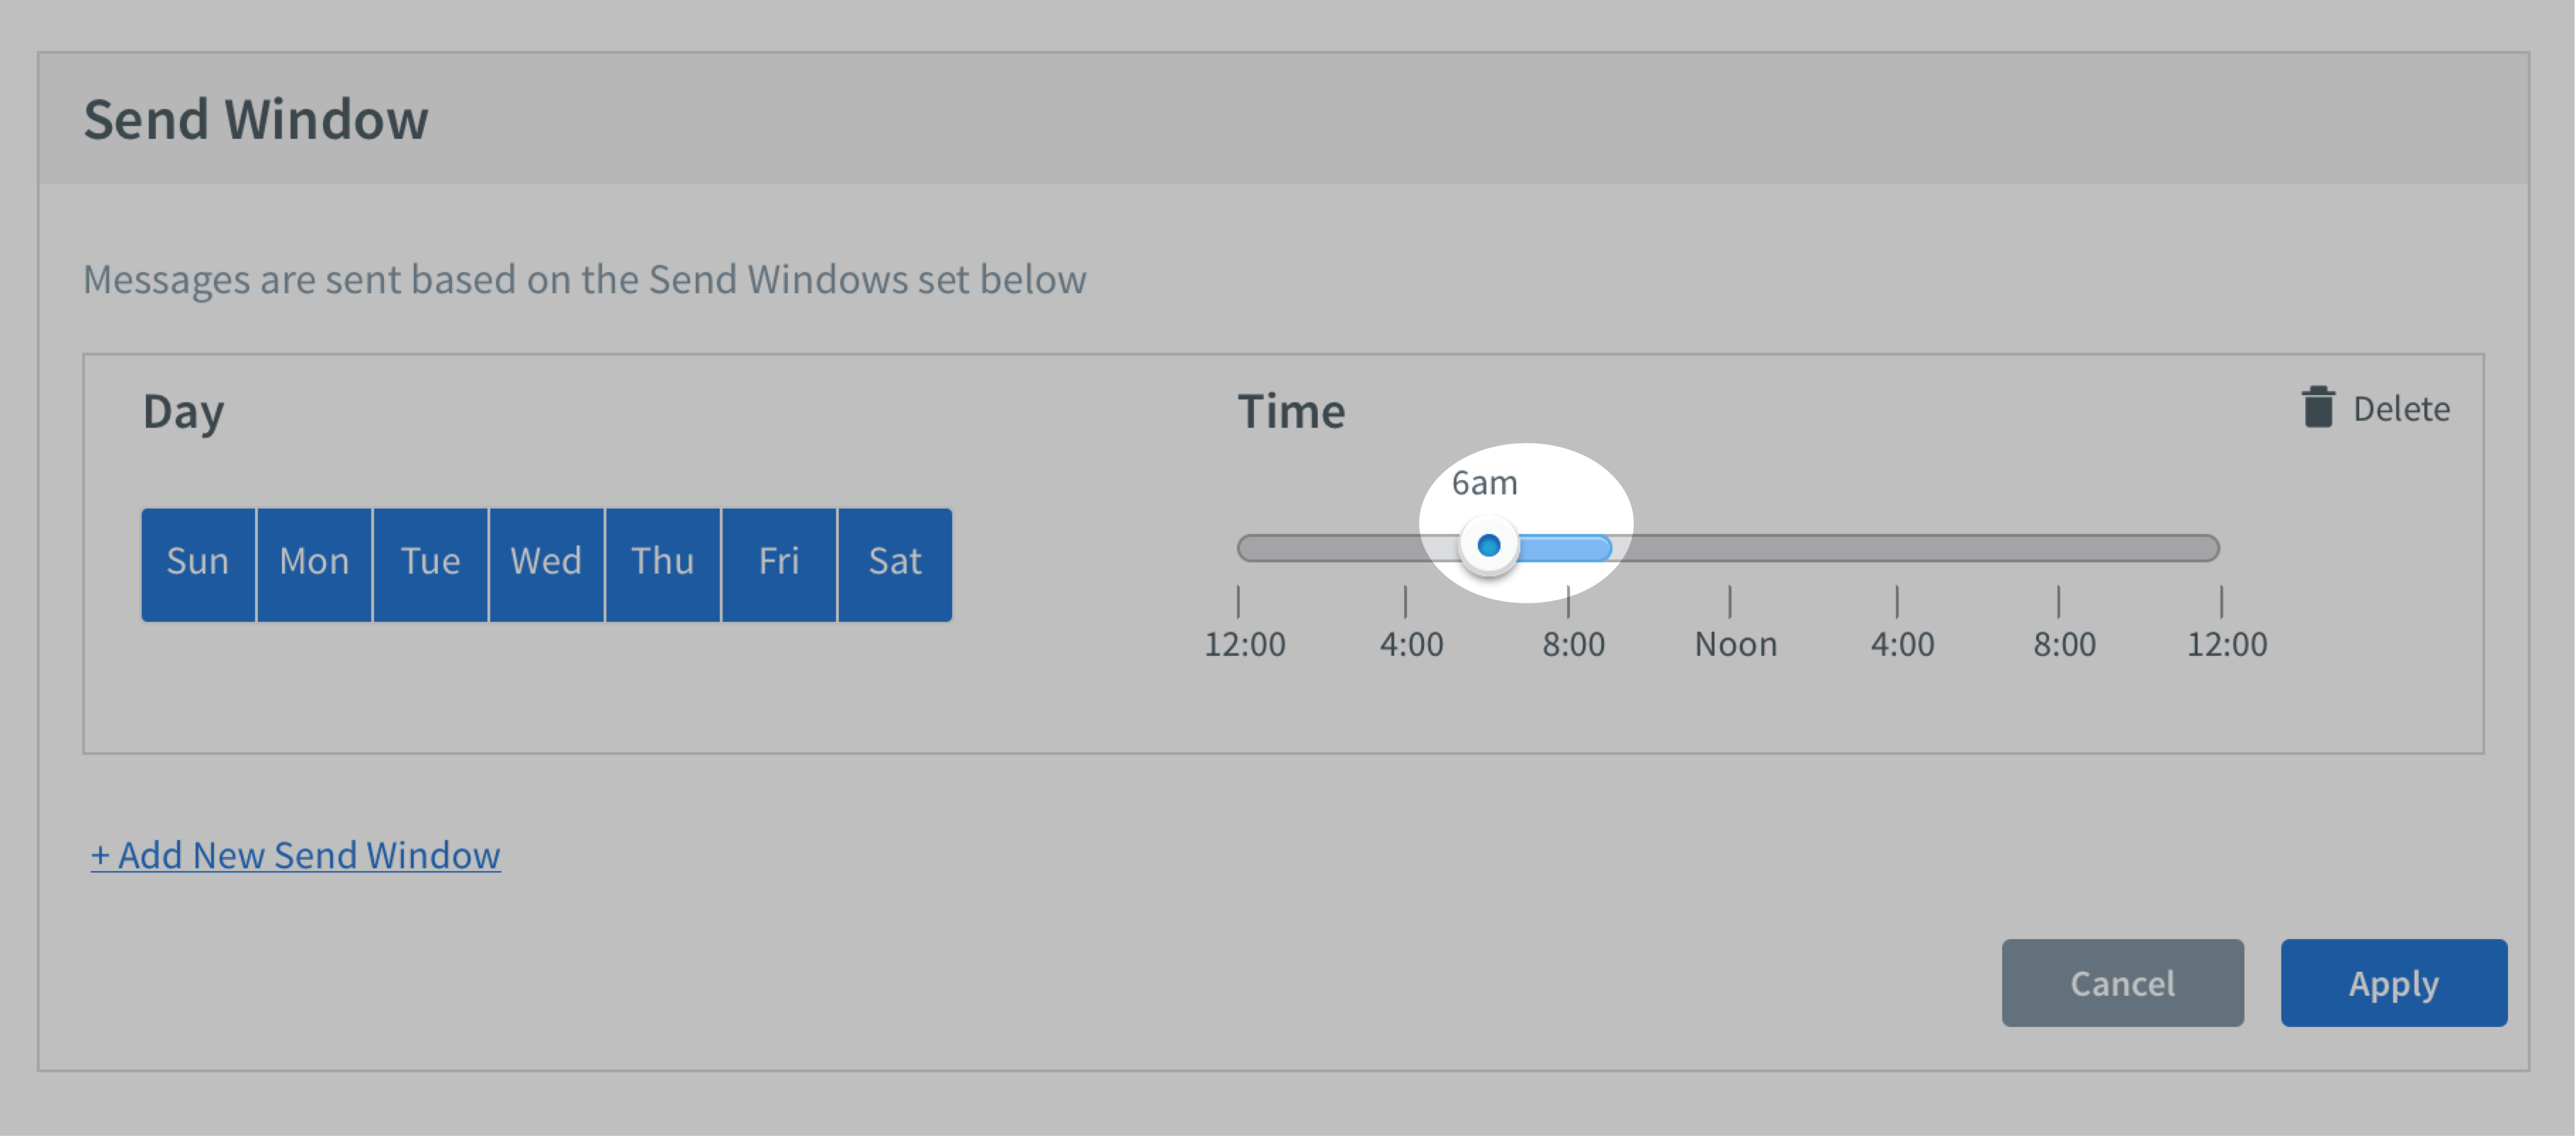 Time selected for Send Window section